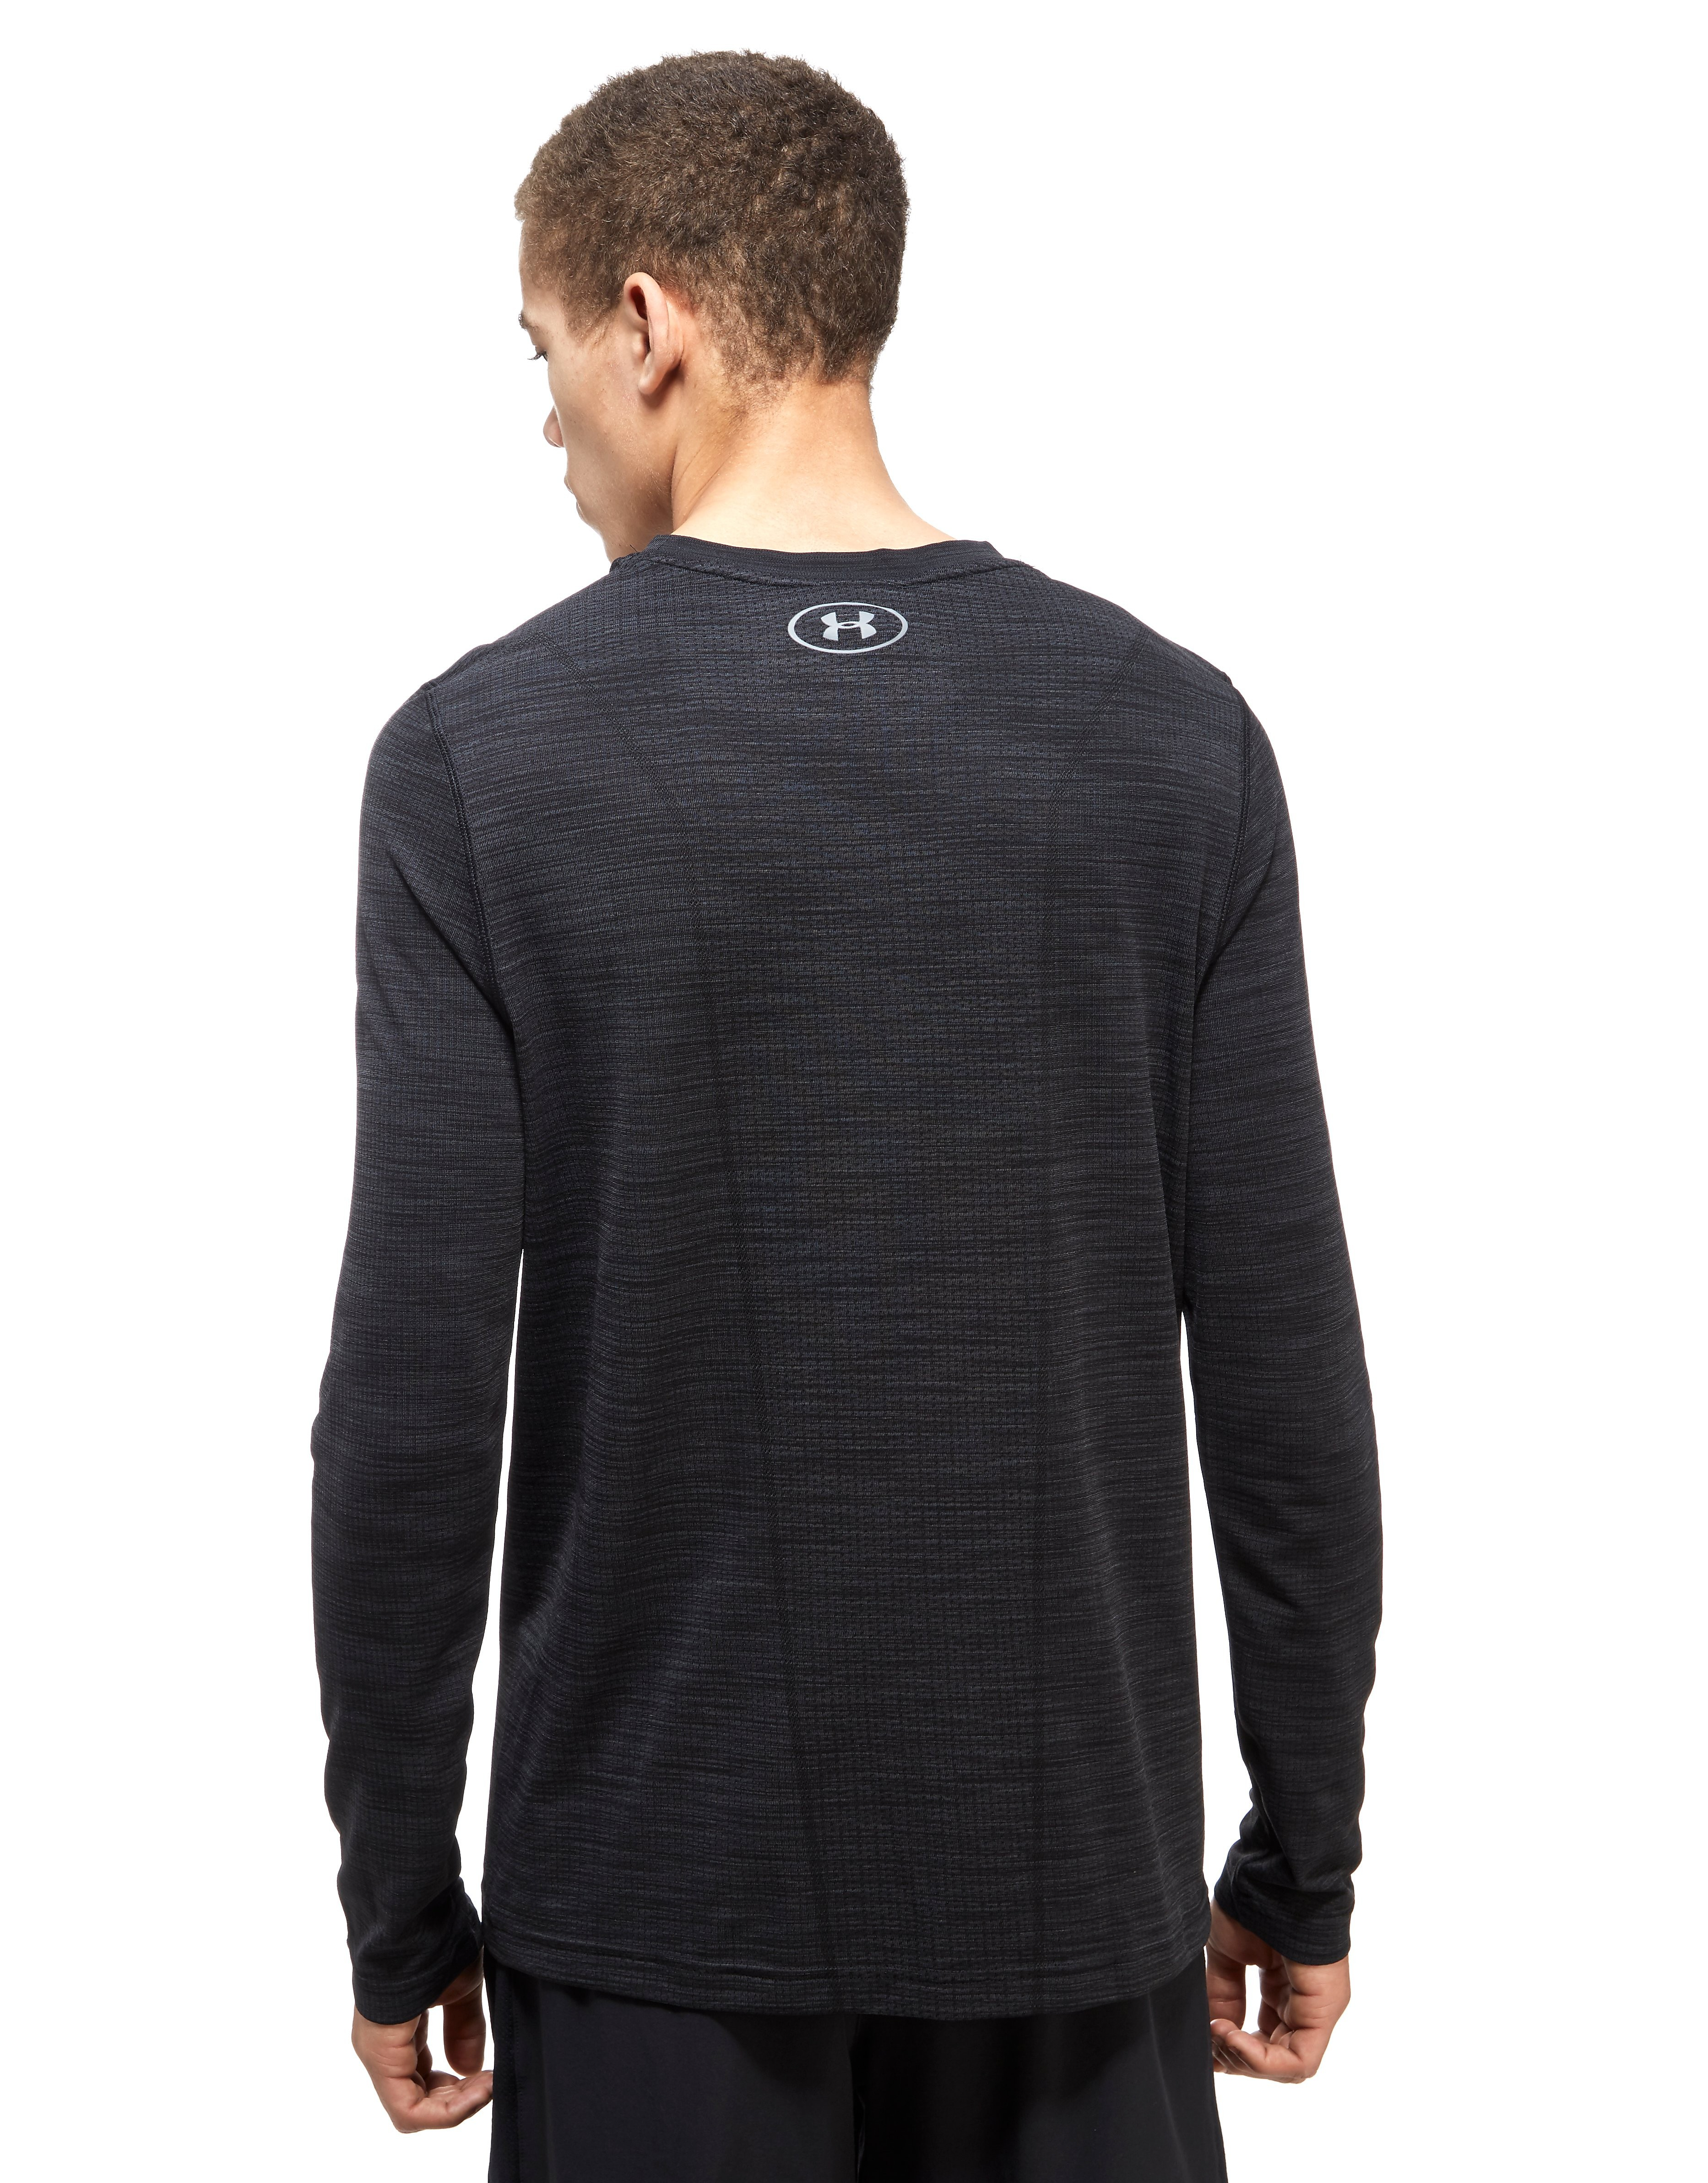 Under Armour Threadborne Long-Sleeved T-Shirt